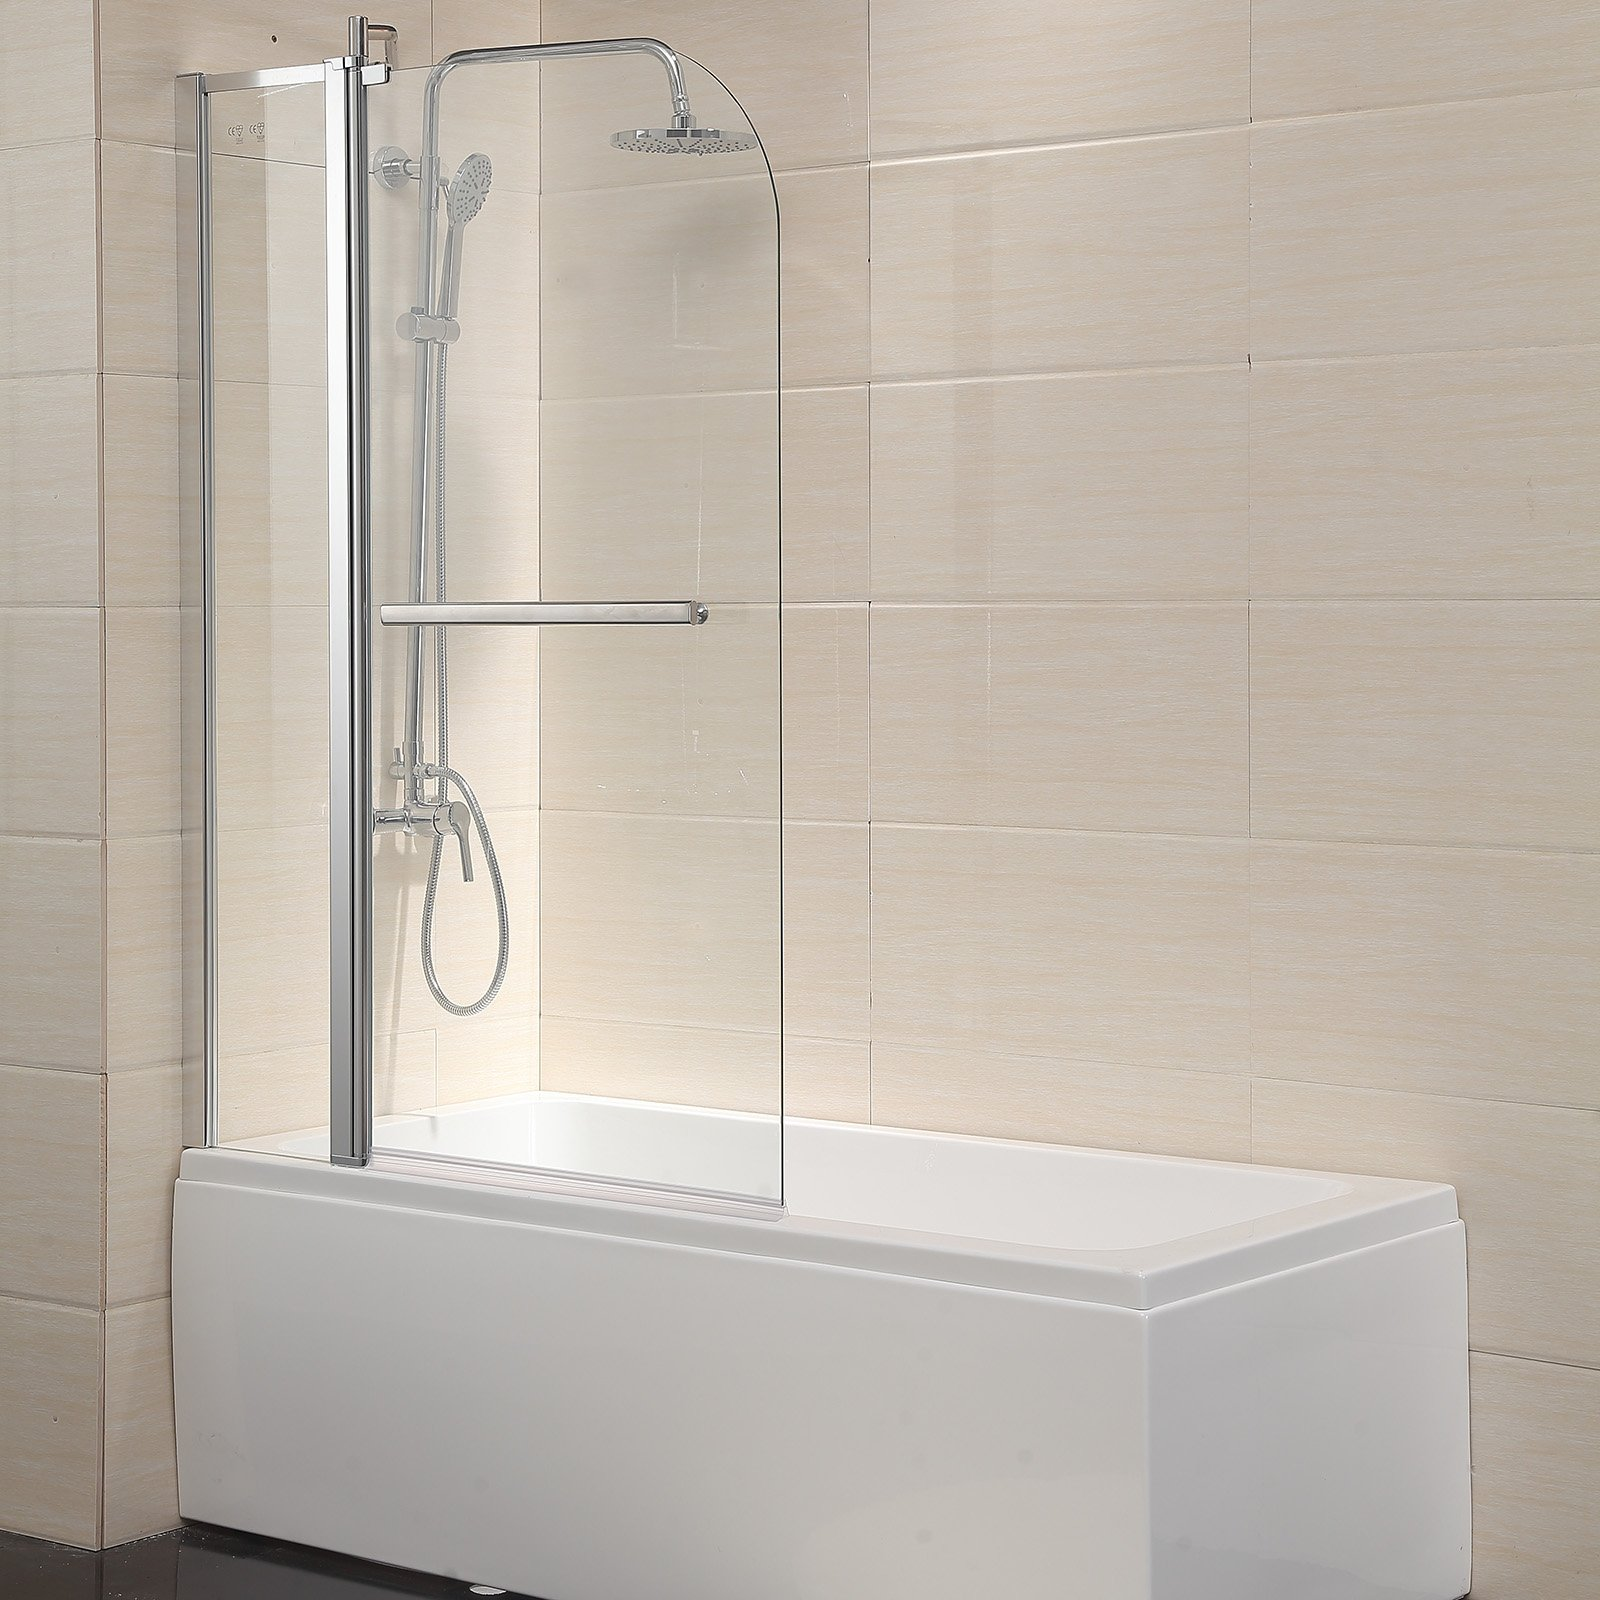 Best Rated In Bathtub Sliding Doors Amp Helpful Customer